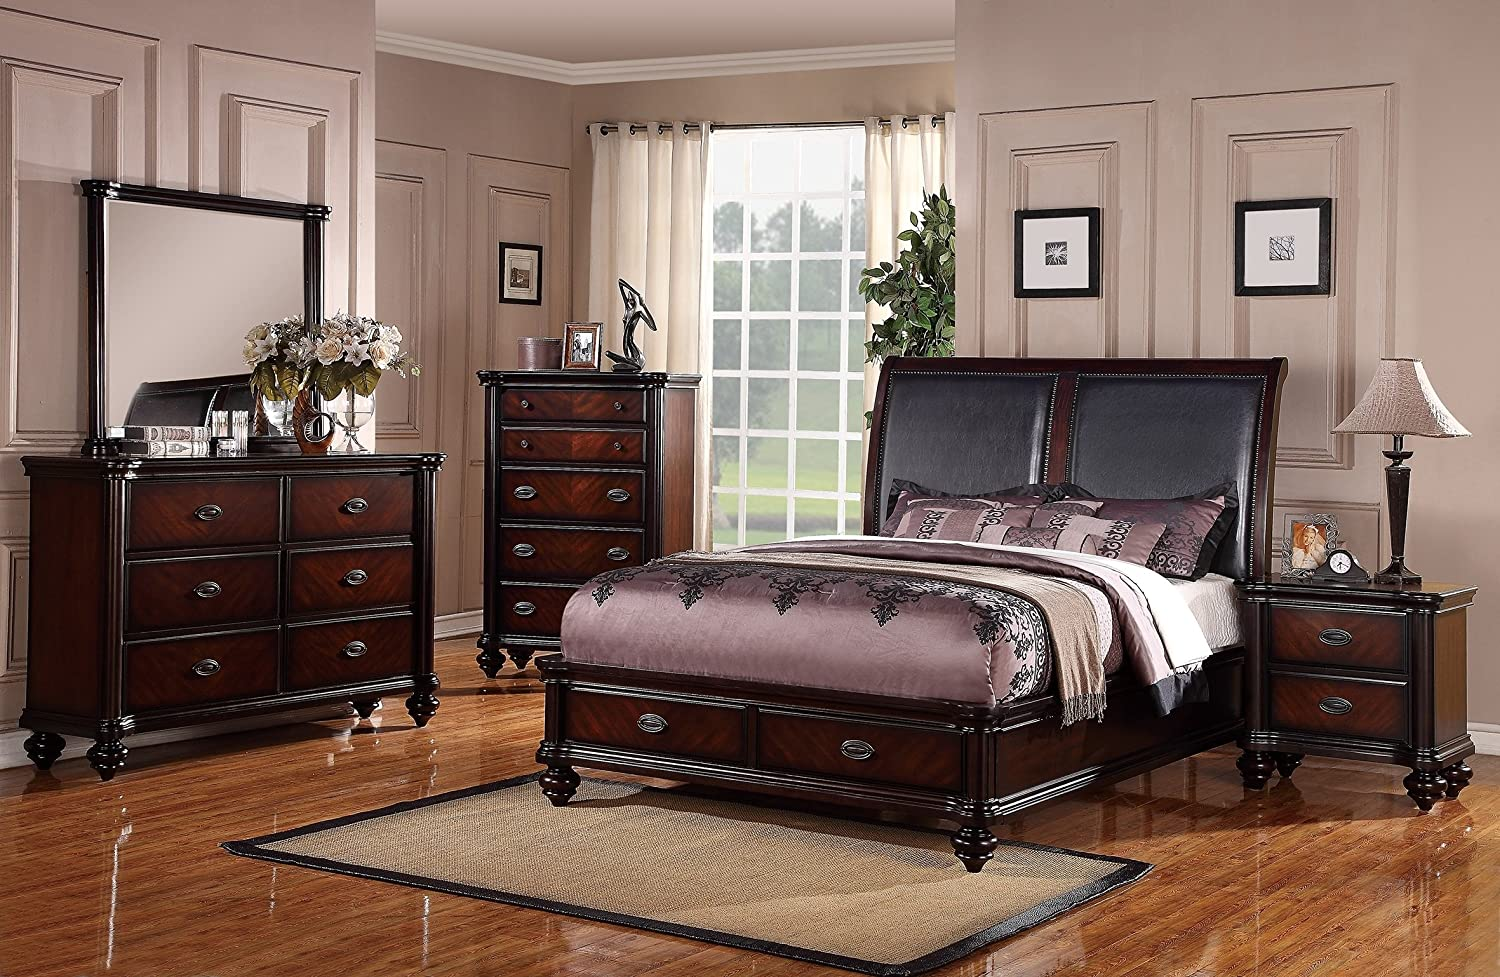 Amazon.com: Traditional Italian Design Bedframe Bedroom ...